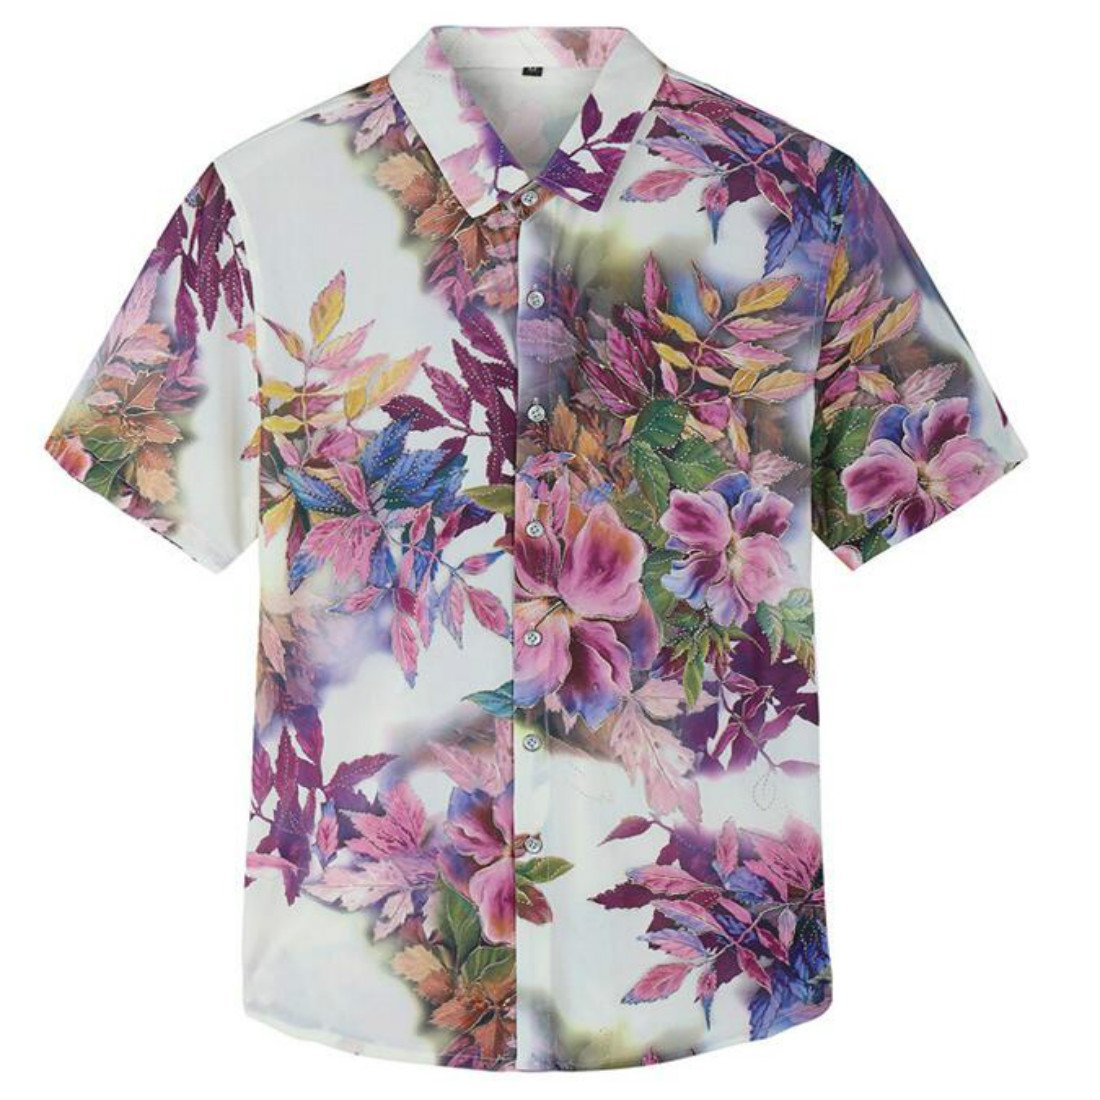 e71de70f9161 This short sleeve hawaiian button shirt is made of good quality fabric,  lightweight,soft and breathable, give you more comfort